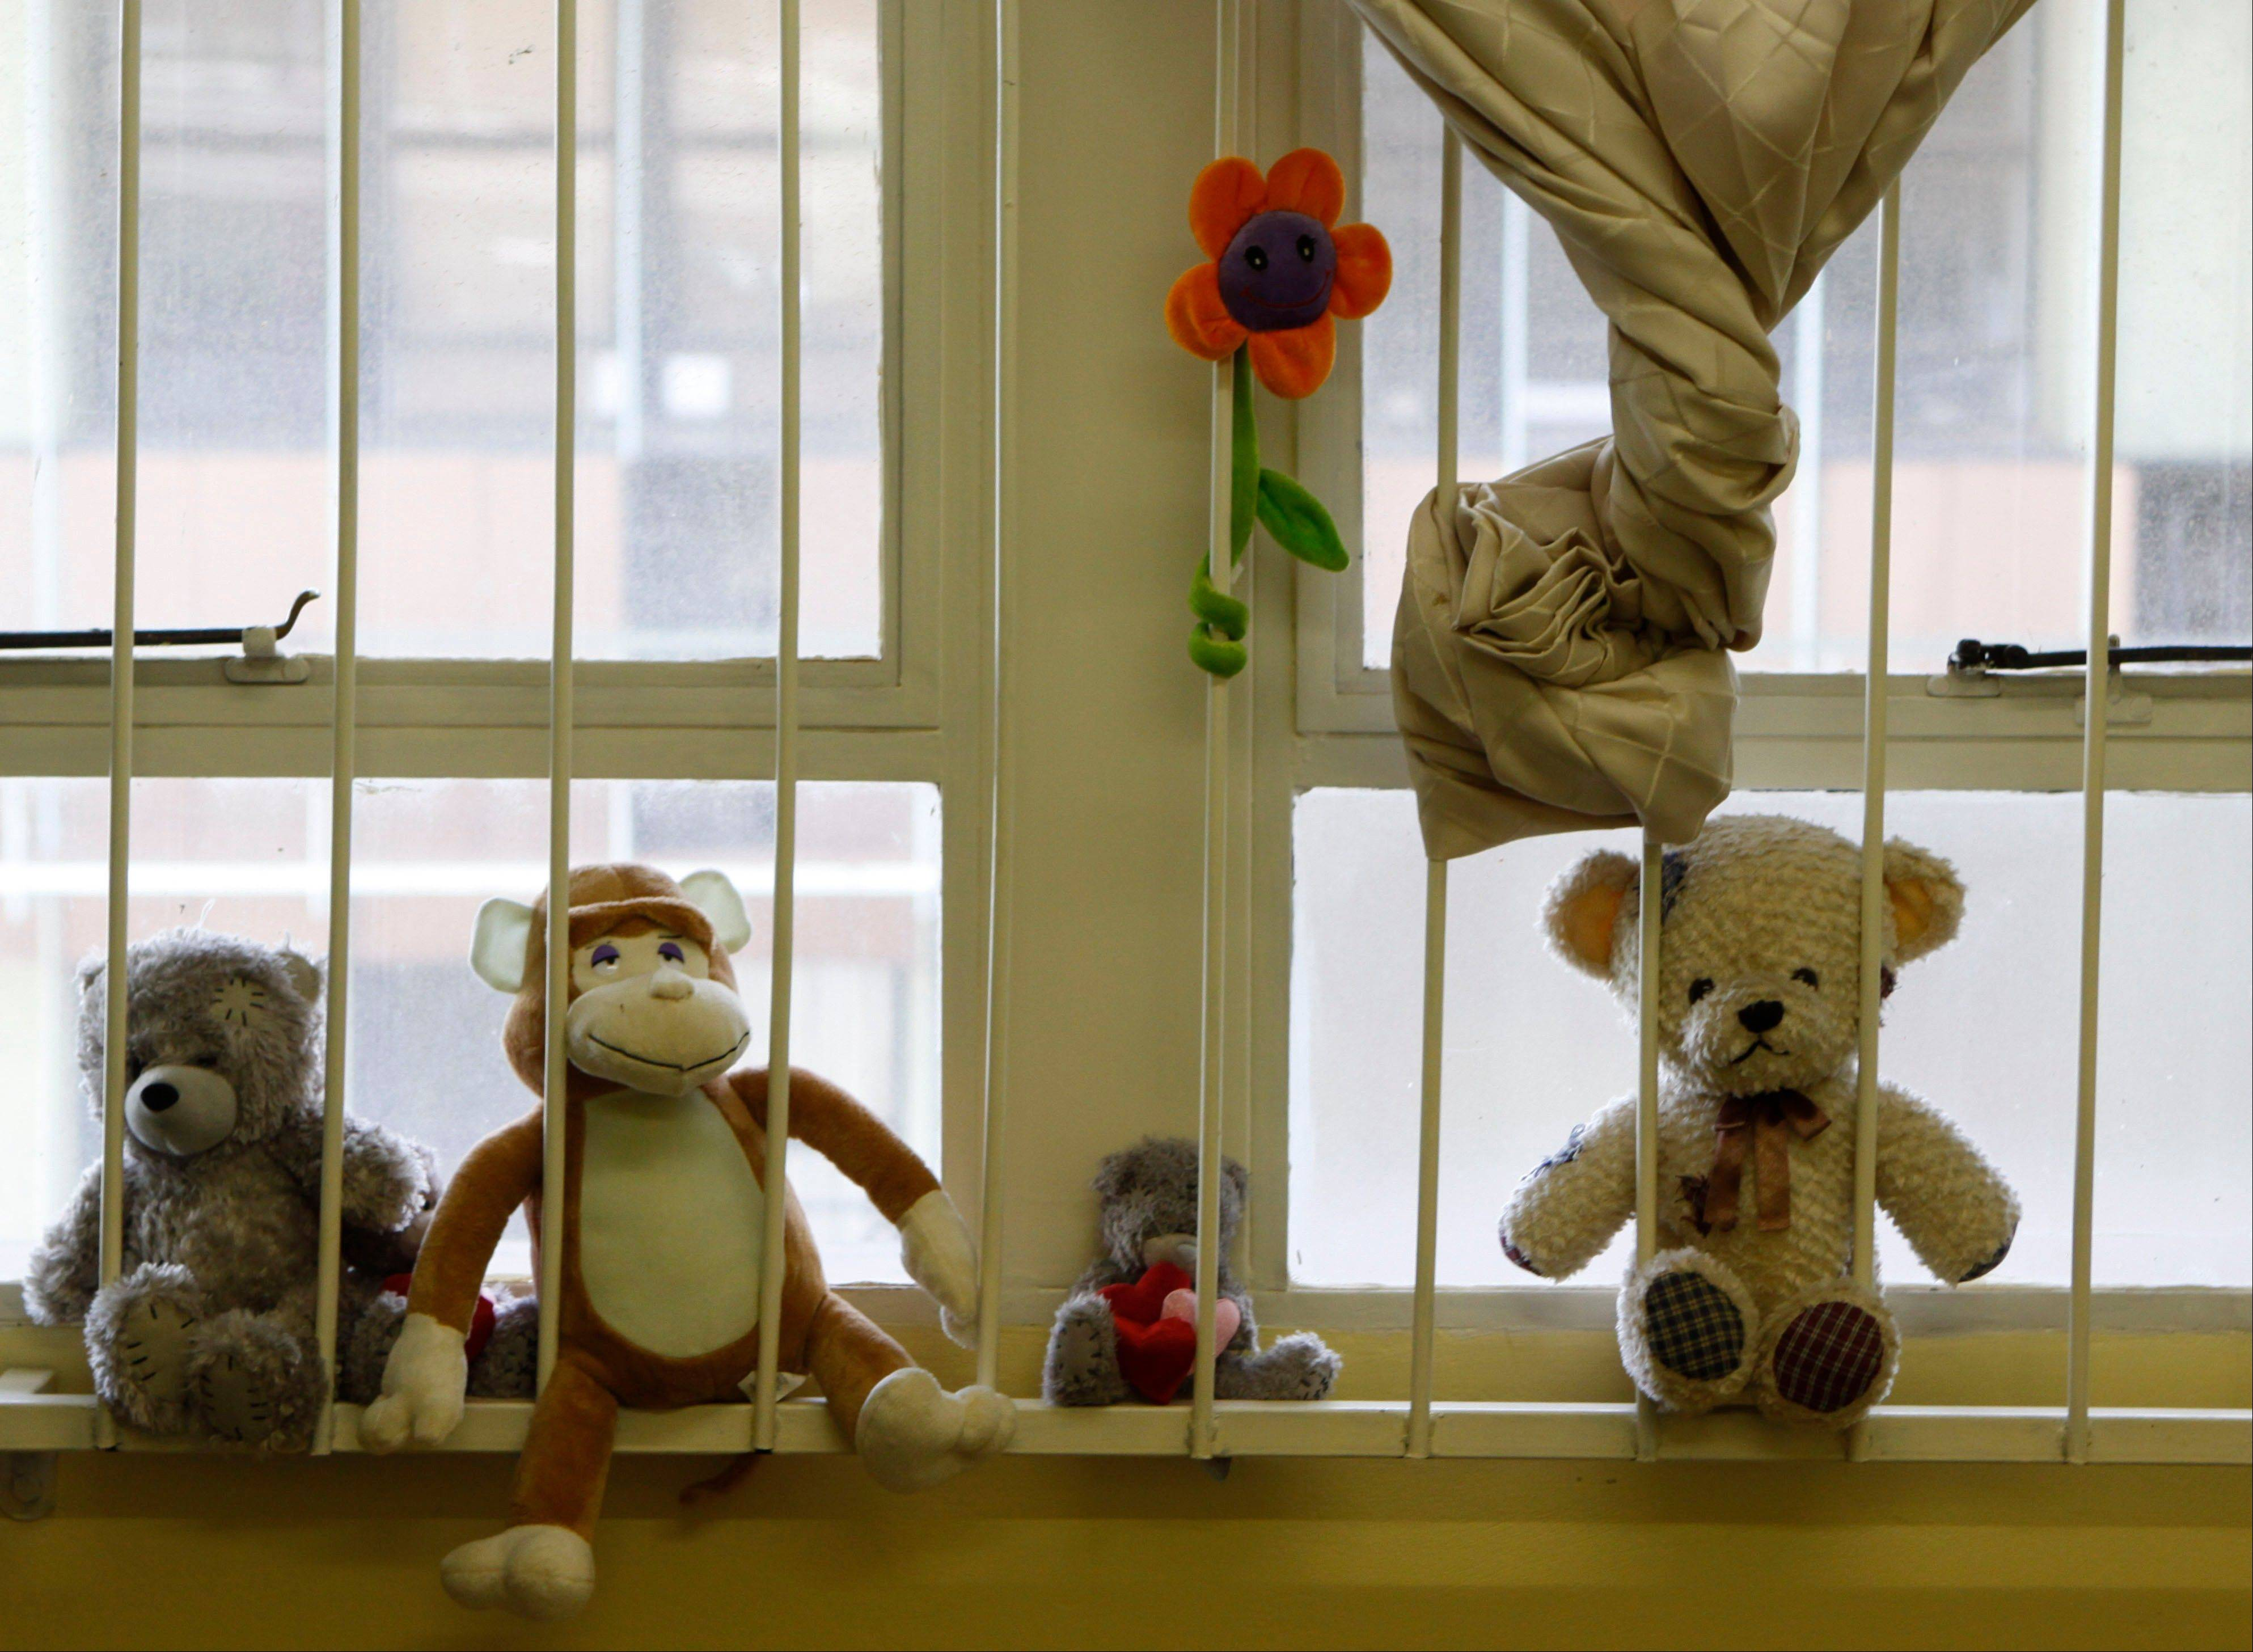 Soft toys are placed on a windowsill at the Teddy Bear Clinic, where abused children are treated, in Johannesburg, Friday, Feb. 8, 2013. In a country where one in four women are raped and where months-old babies and 94-year-old grandmothers are sexually assaulted, citizens are demanding action after a teenager was gang-raped, sliced open from her stomach to her genitals, and left for dead on a construction site last week.